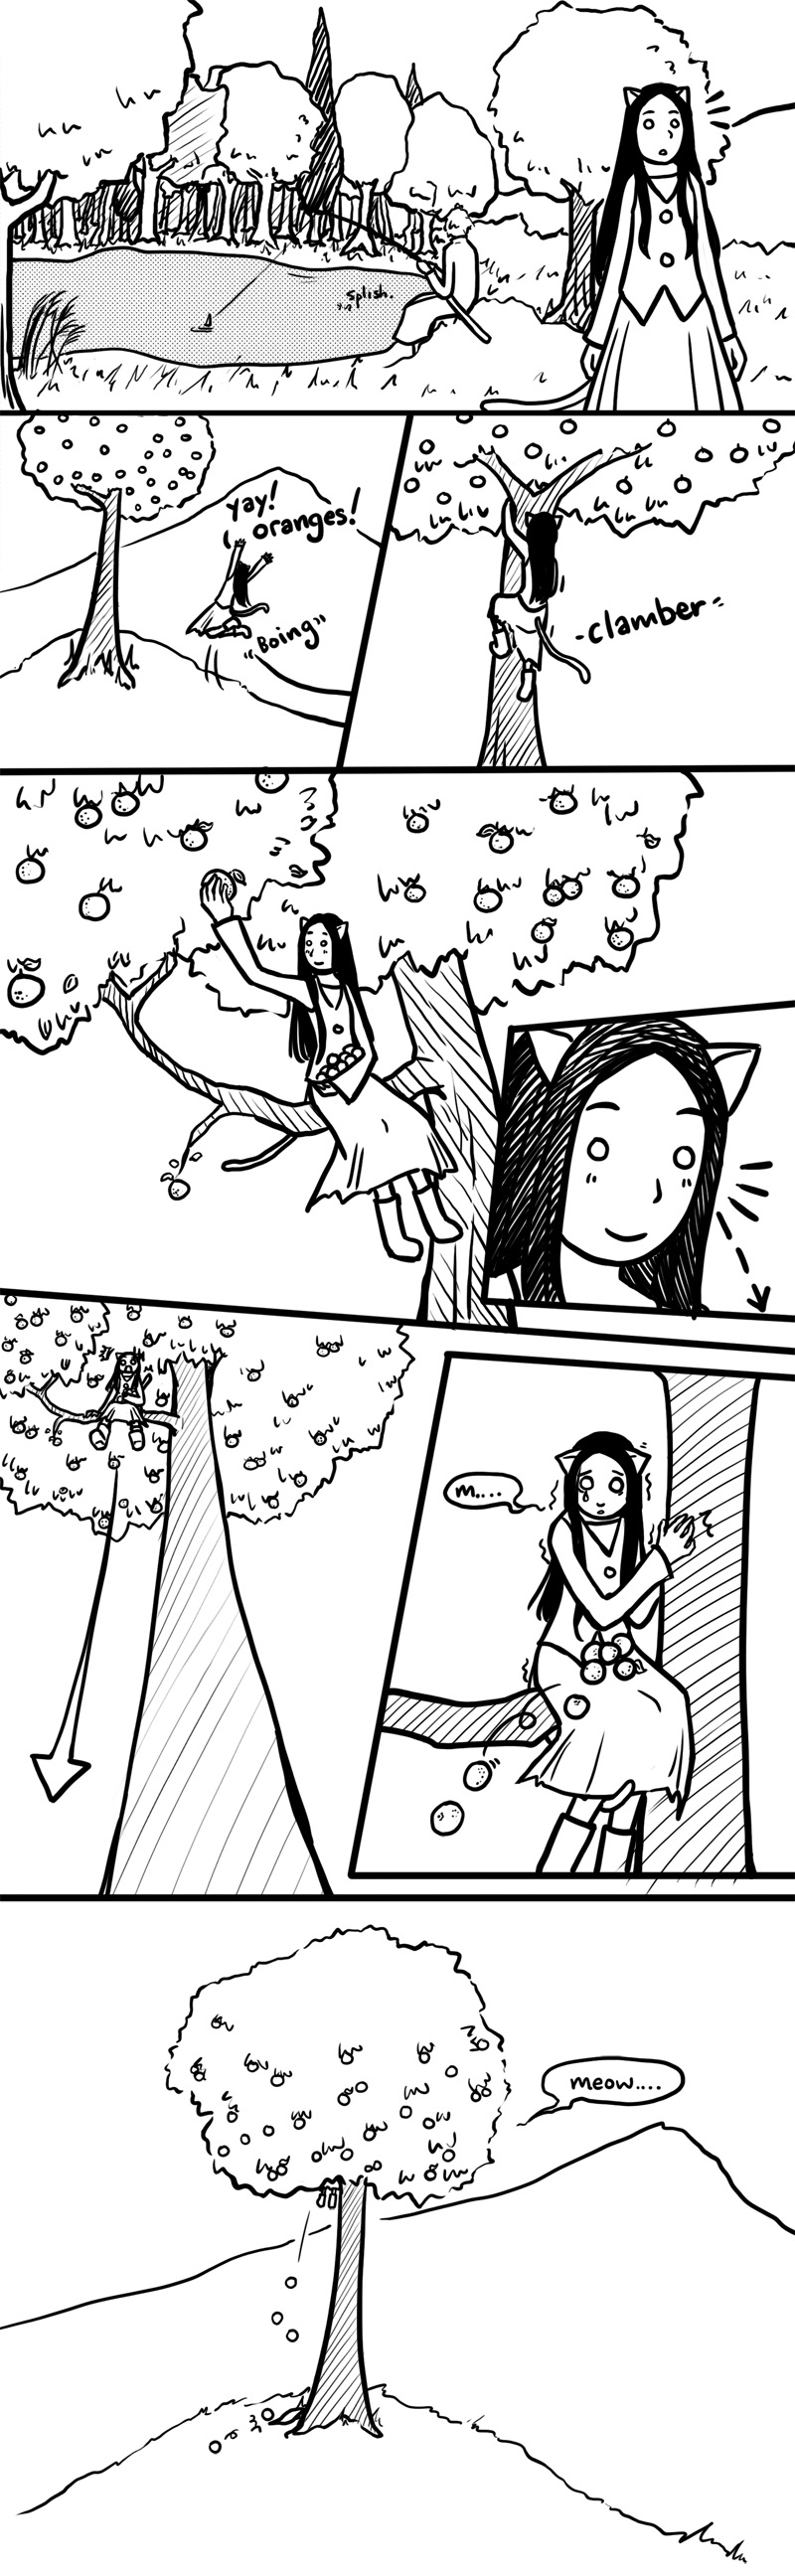 comic-2012-03-15-Orange-Tree.jpg